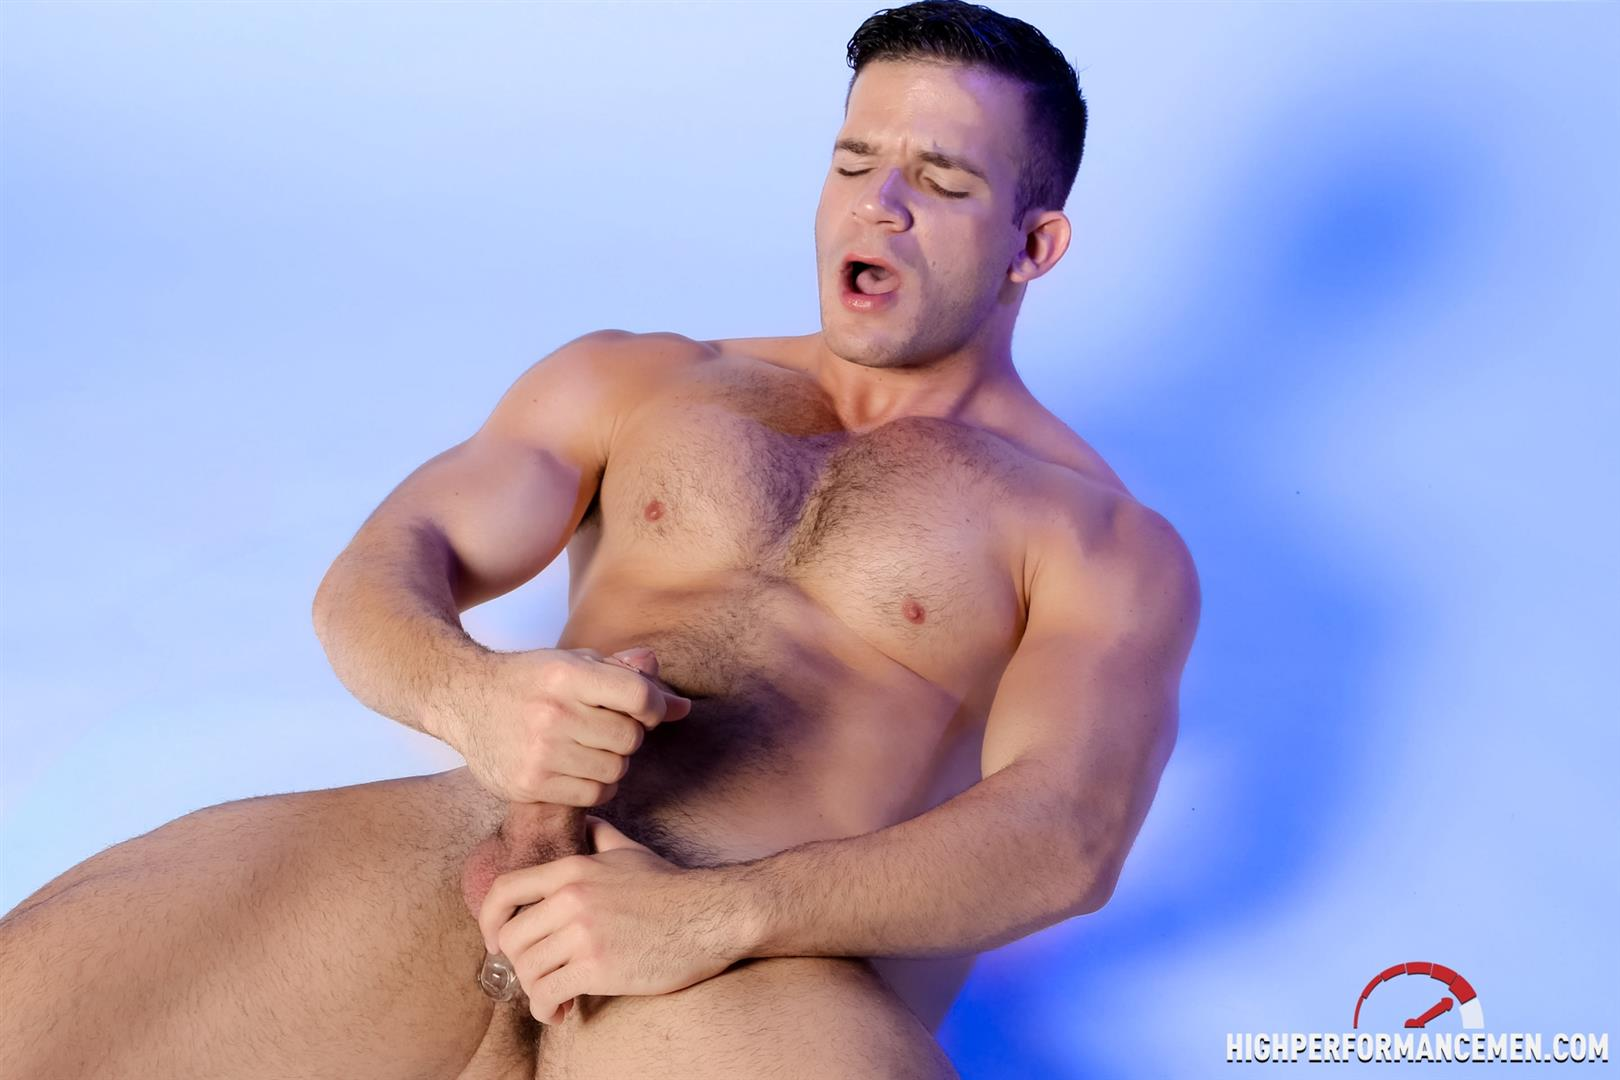 High-Performance-Men-Angel-Rock-Big-Uncut-Cock-Jerking-Off-Latino-Amateur-Gay-Porn-15 Muscle Hunk Angel Rock Jerking Off His Big Uncut Cock